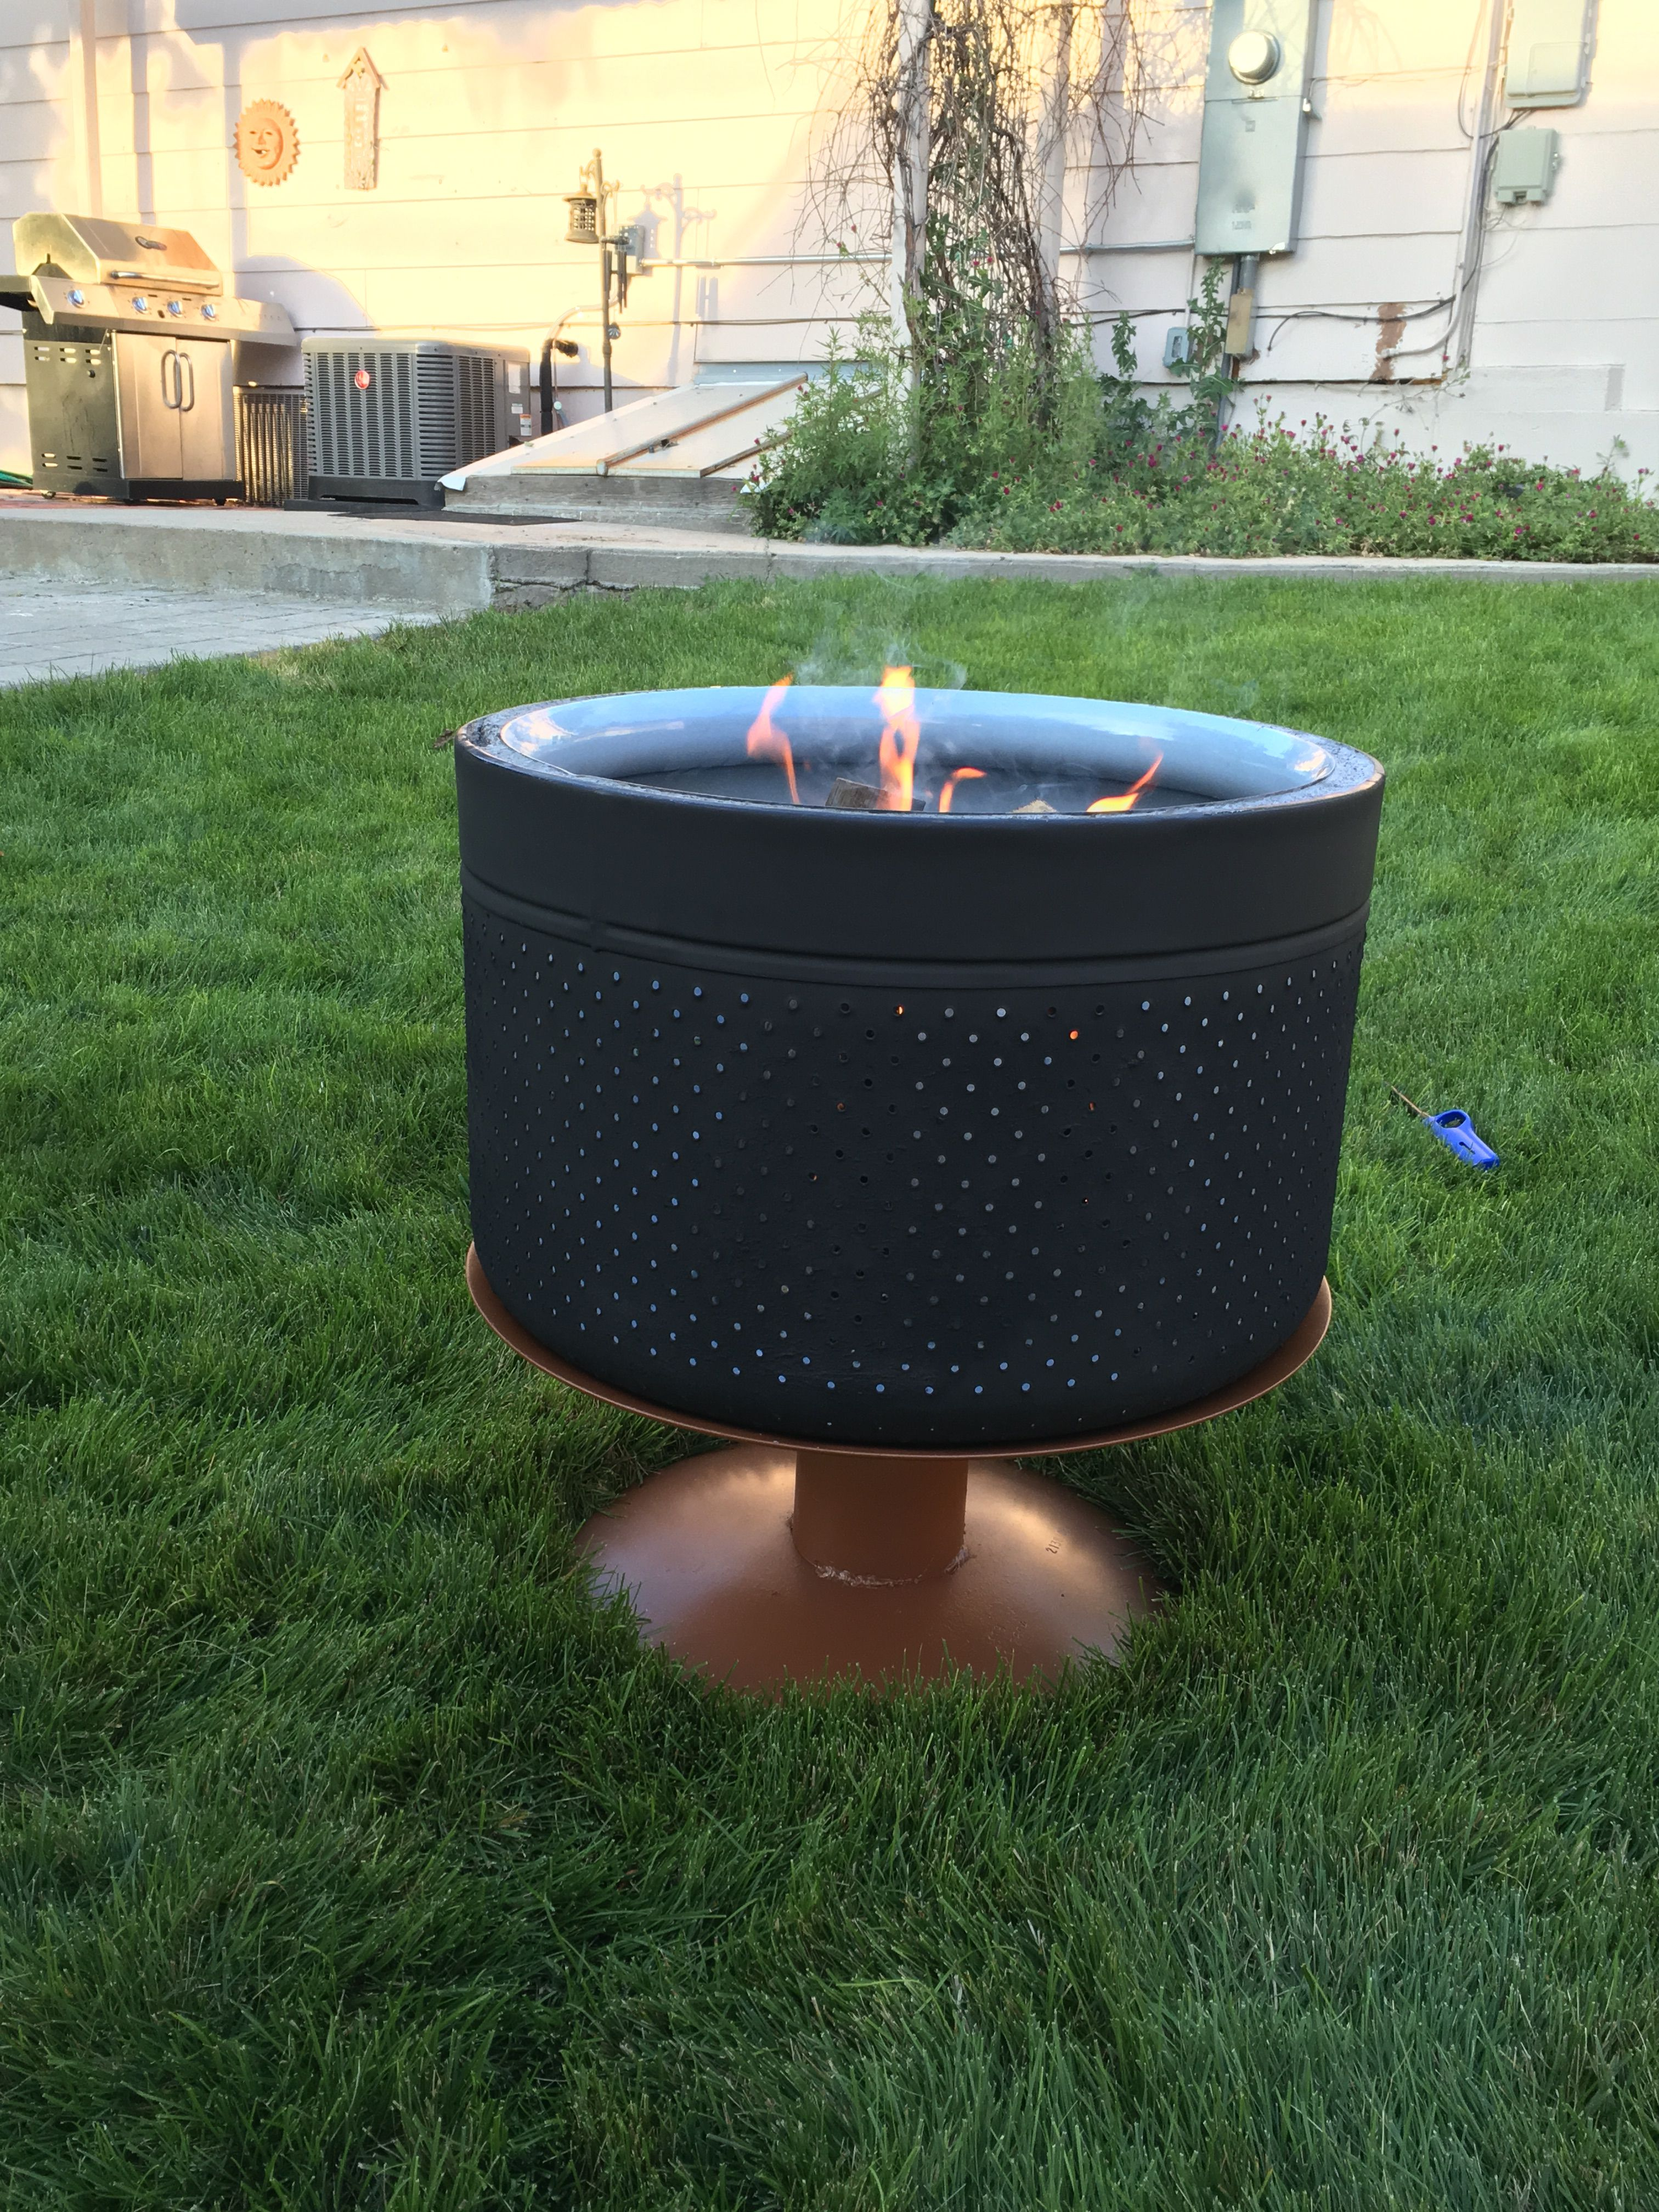 fire pit made from an old washing machine drum and two plow discs